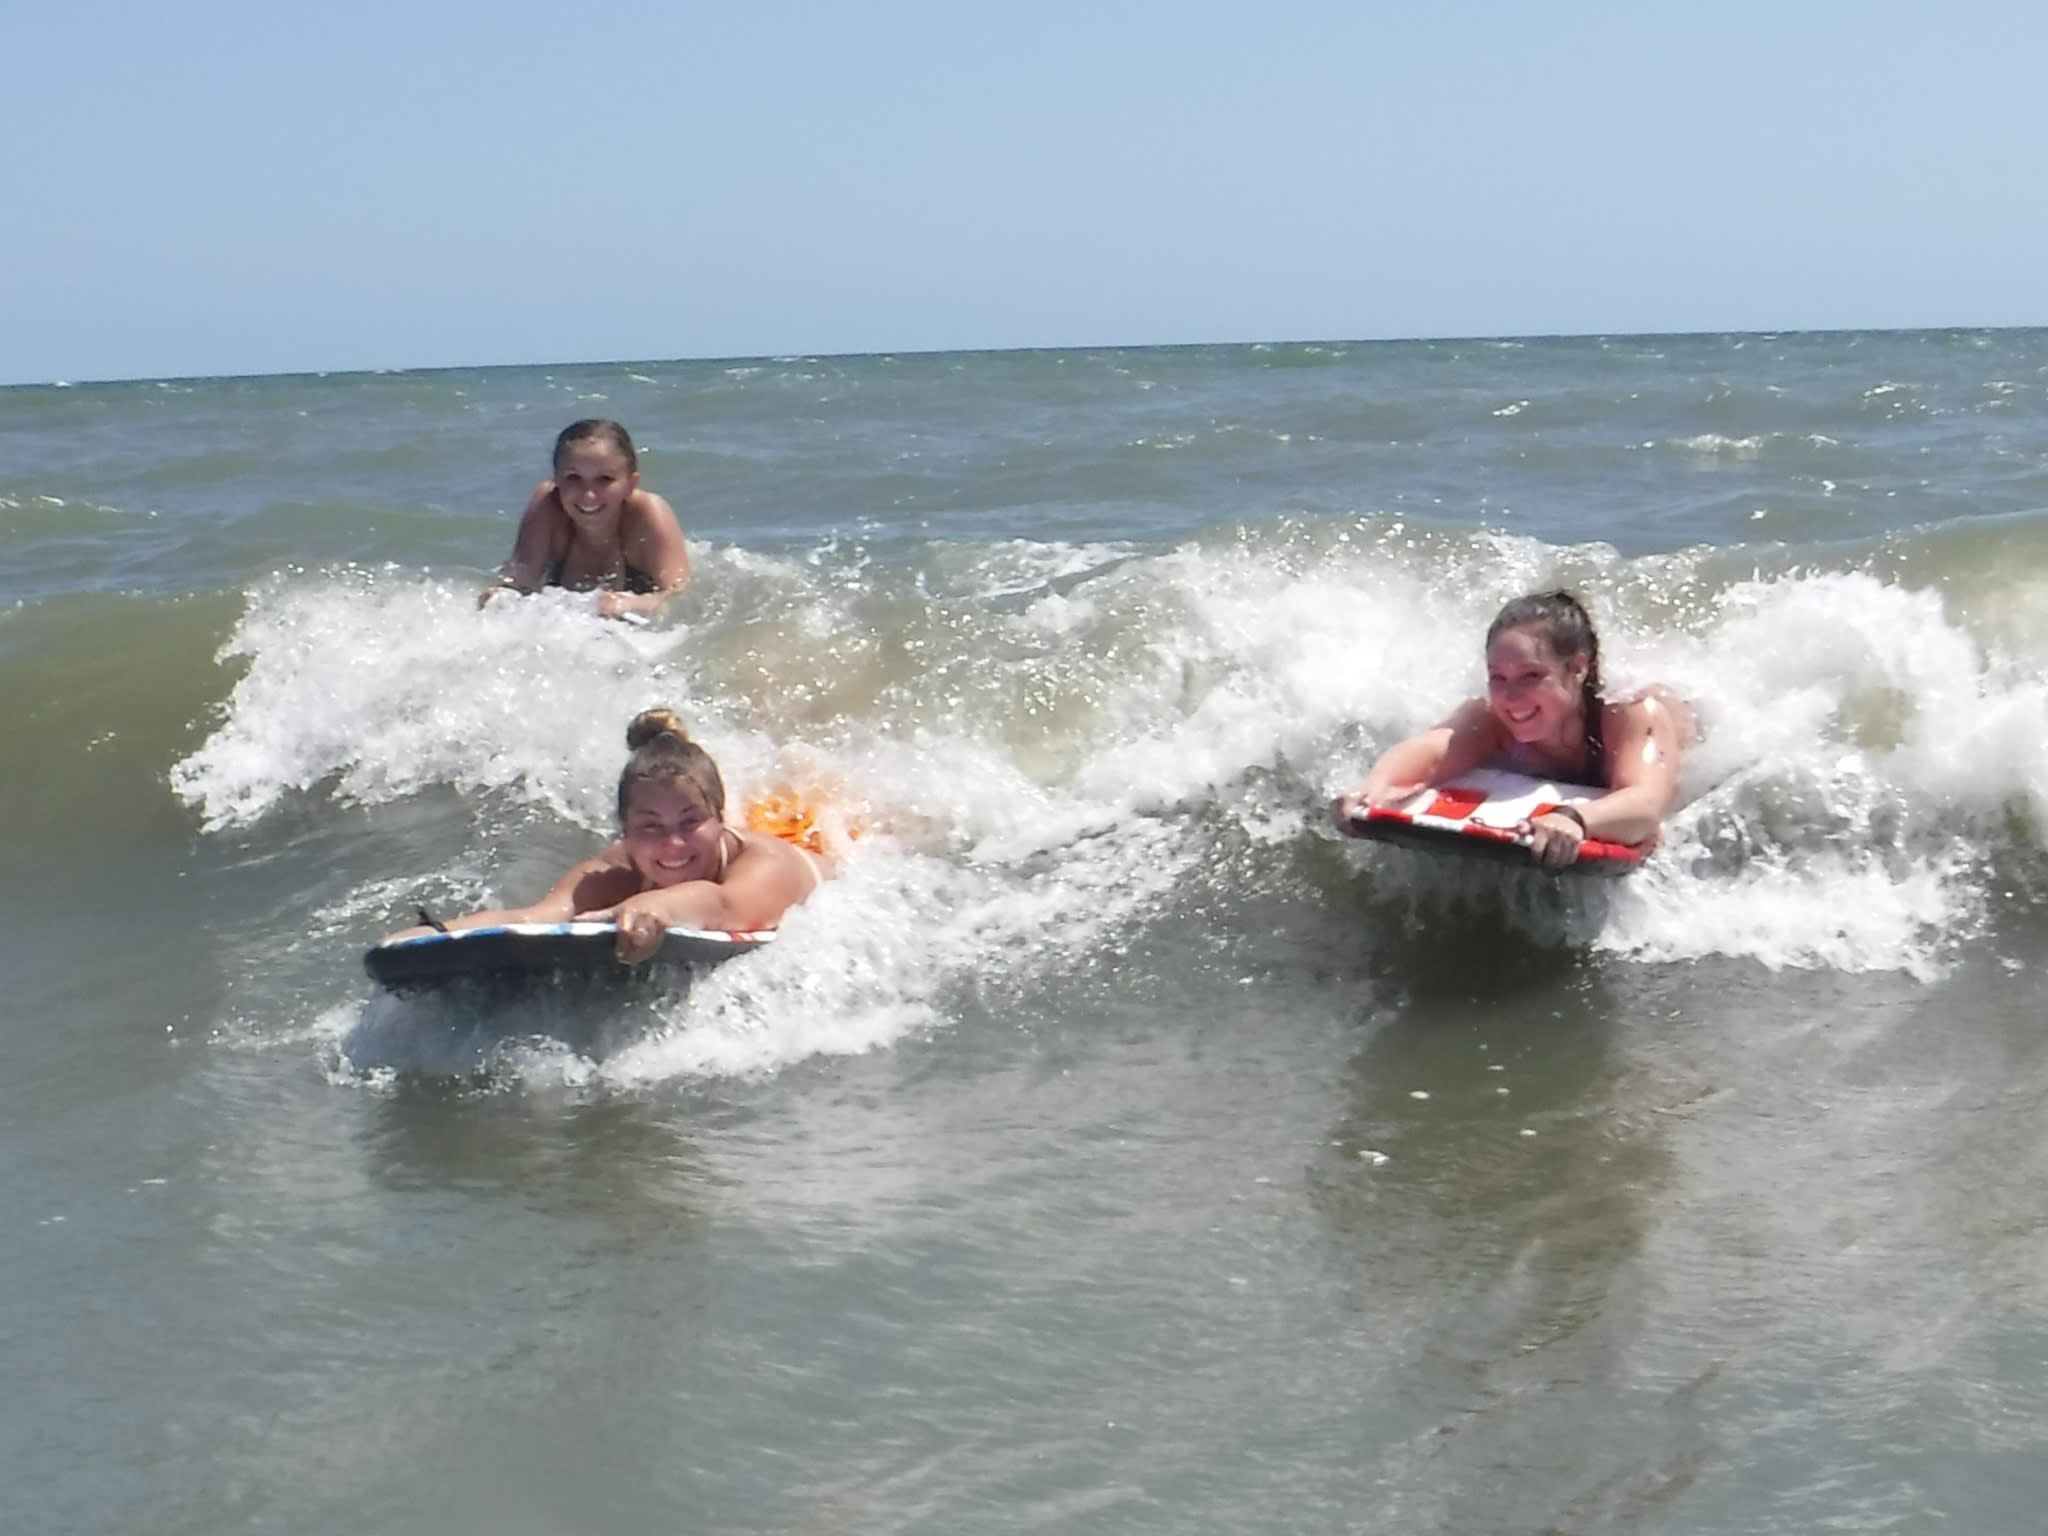 Friends riding the wave in on Holden Beach